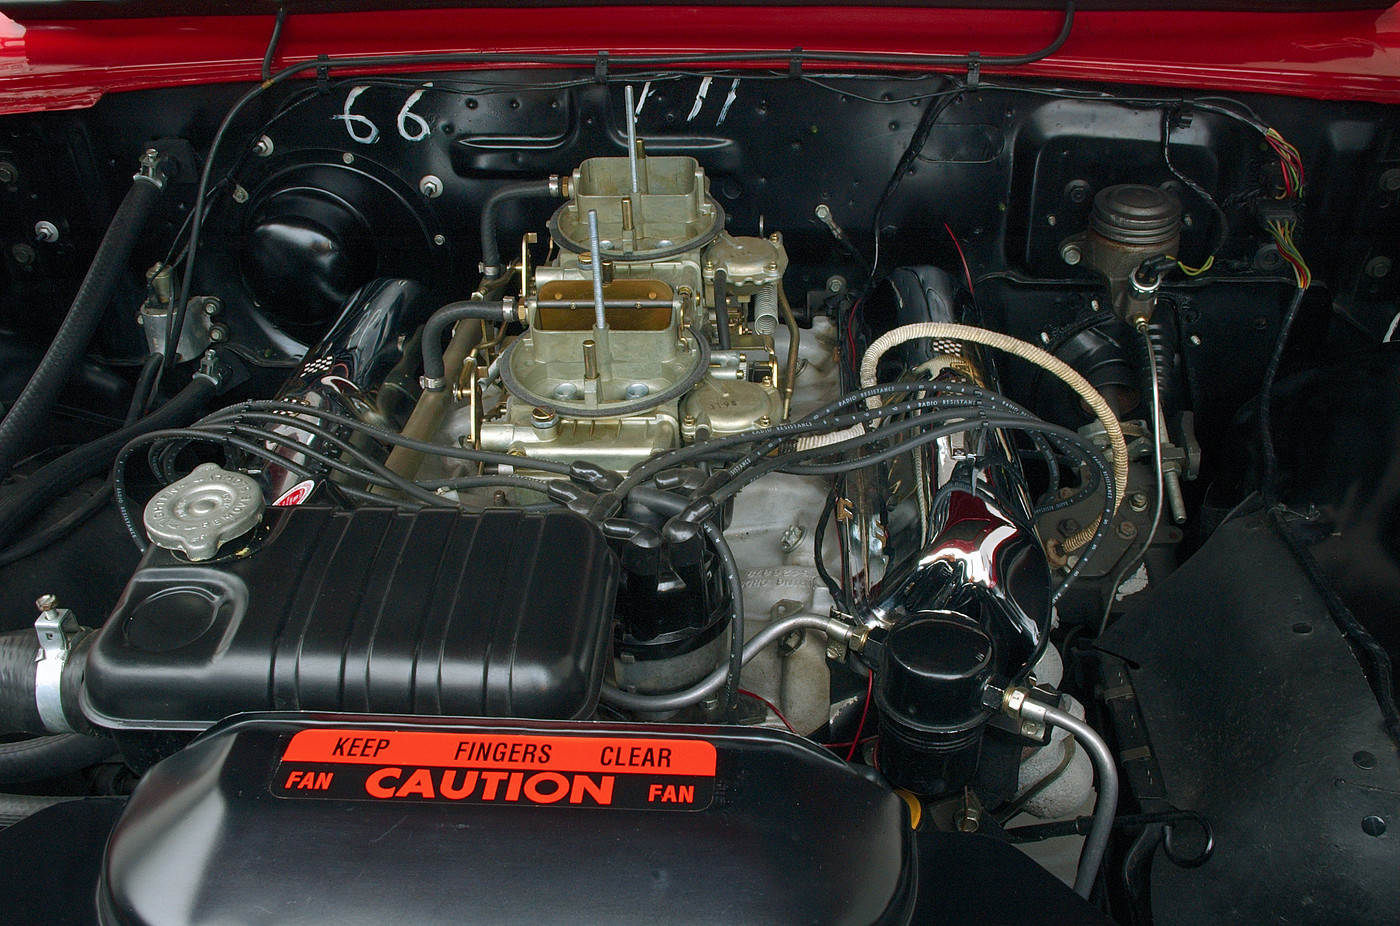 1963 Ford Galaxie 500 XL 427 R-code front engine compartment view